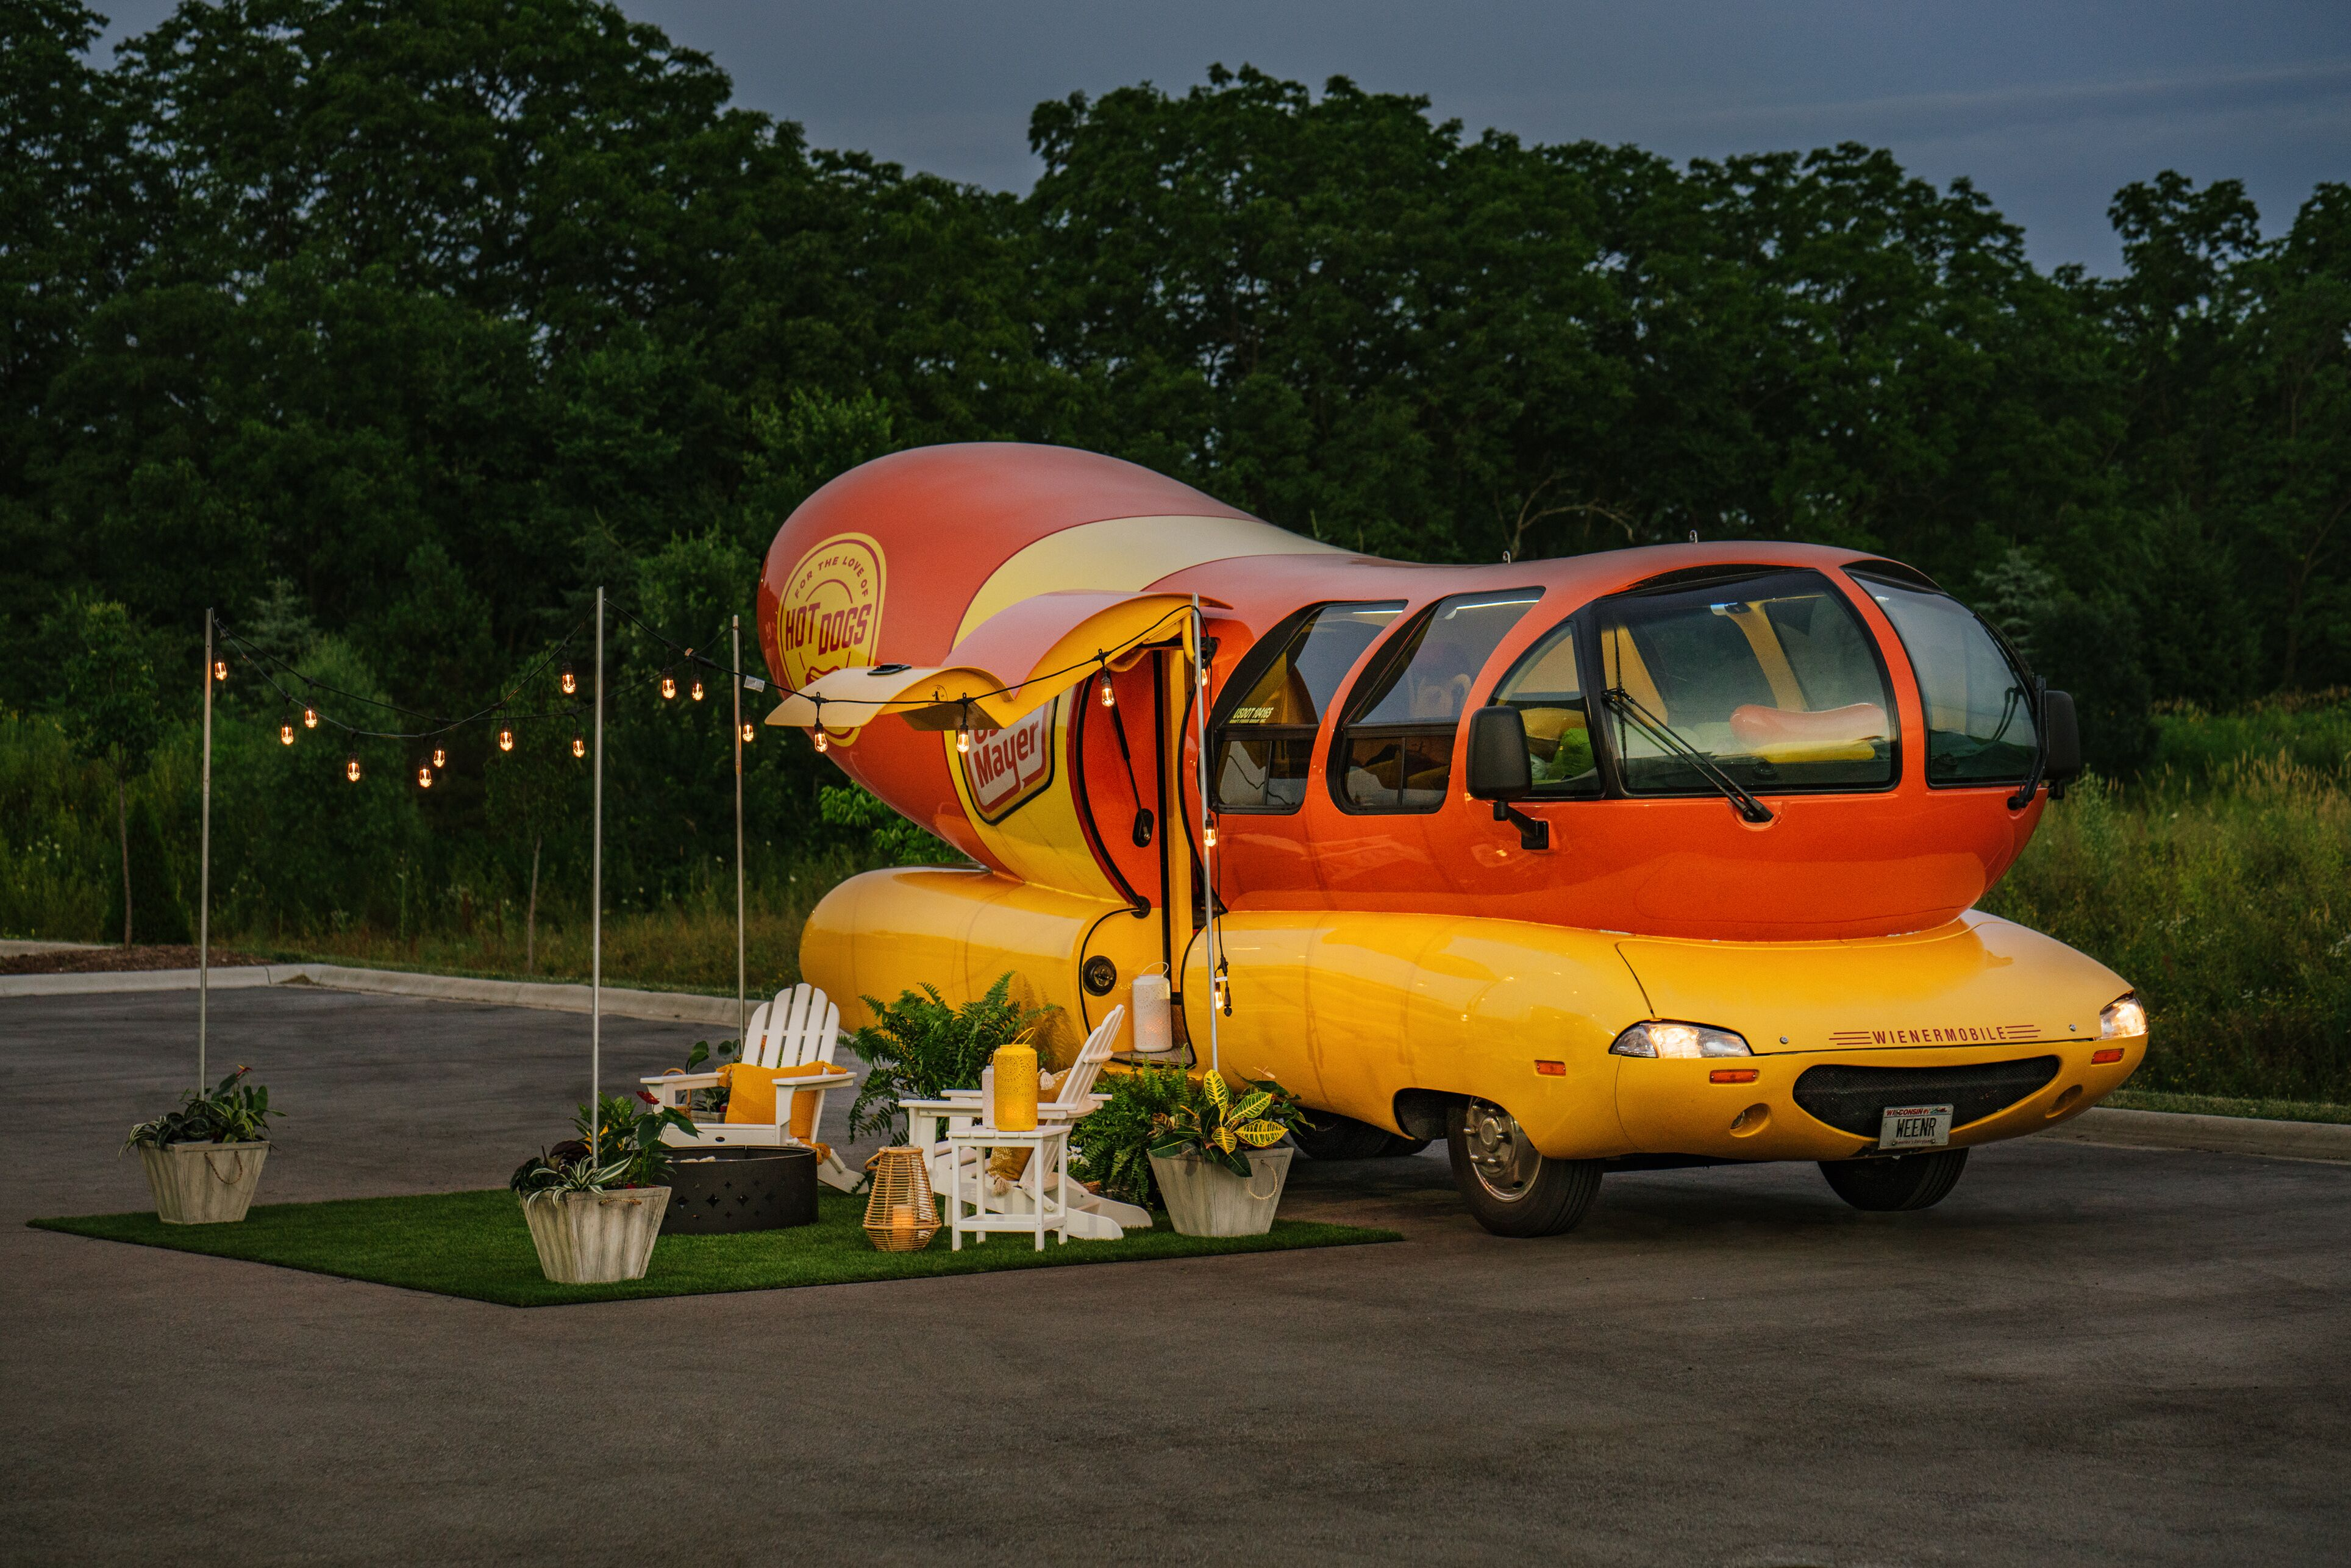 Wienermobile is the ultimate Airbnb rental and it could be yours